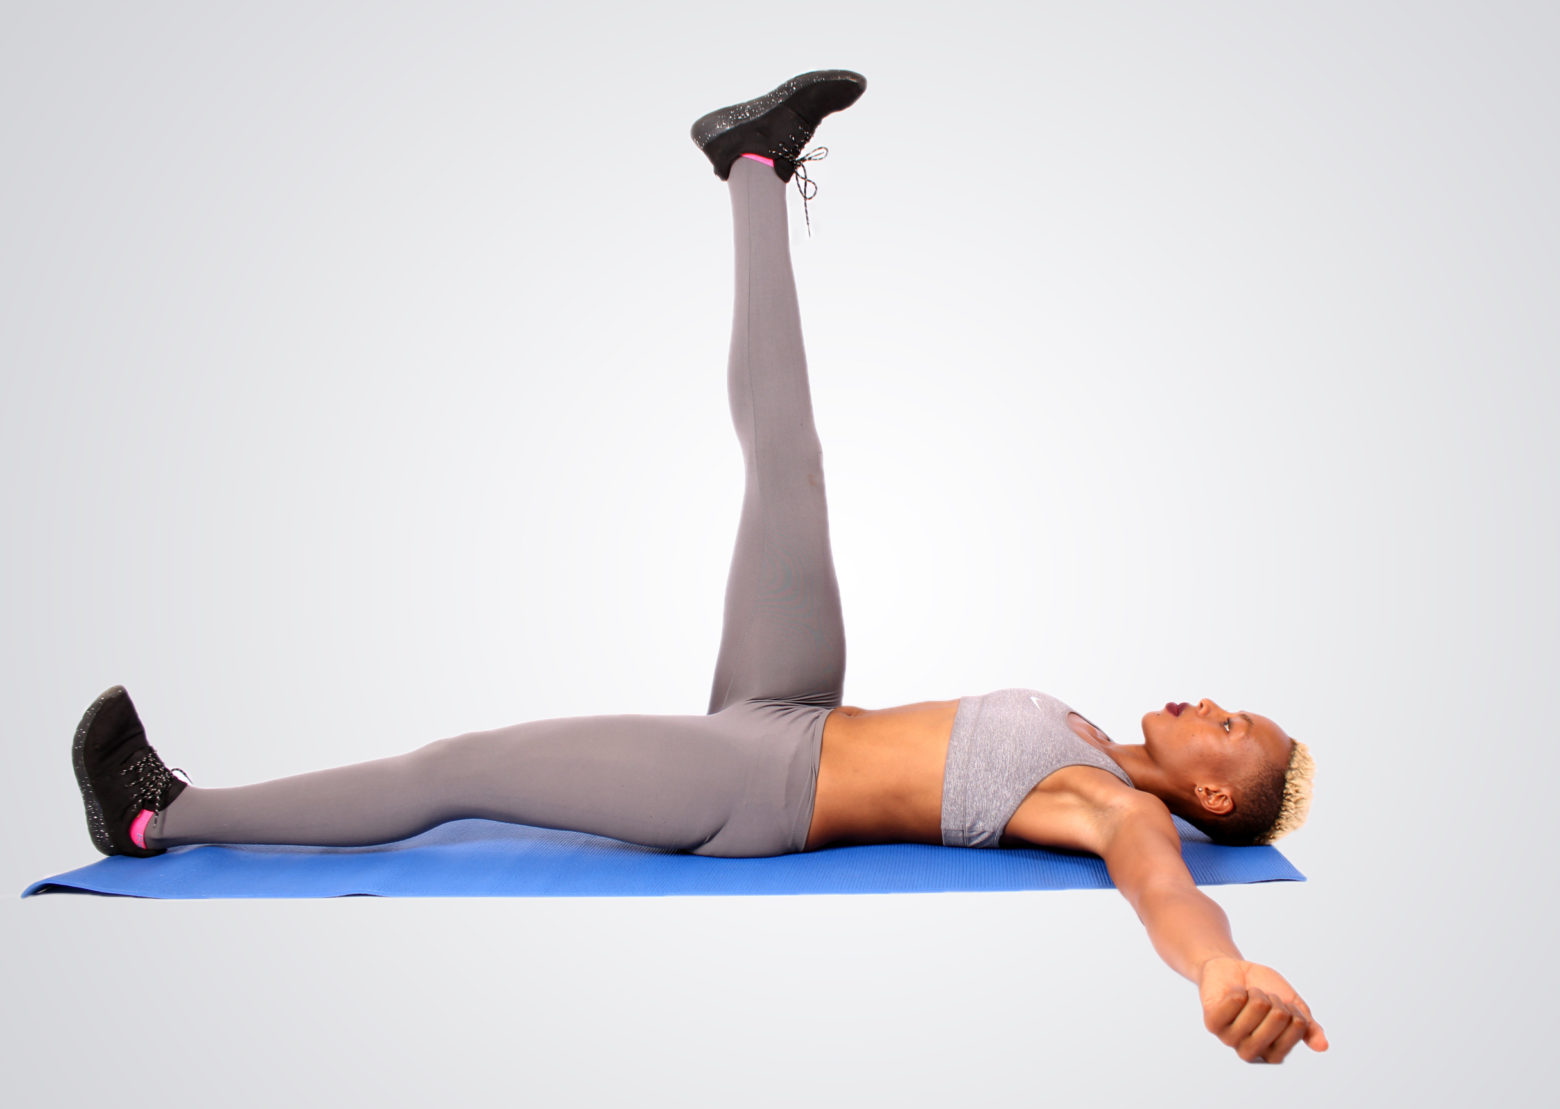 Healthy Woman Exercising Lying on Her Back With One Leg Raises